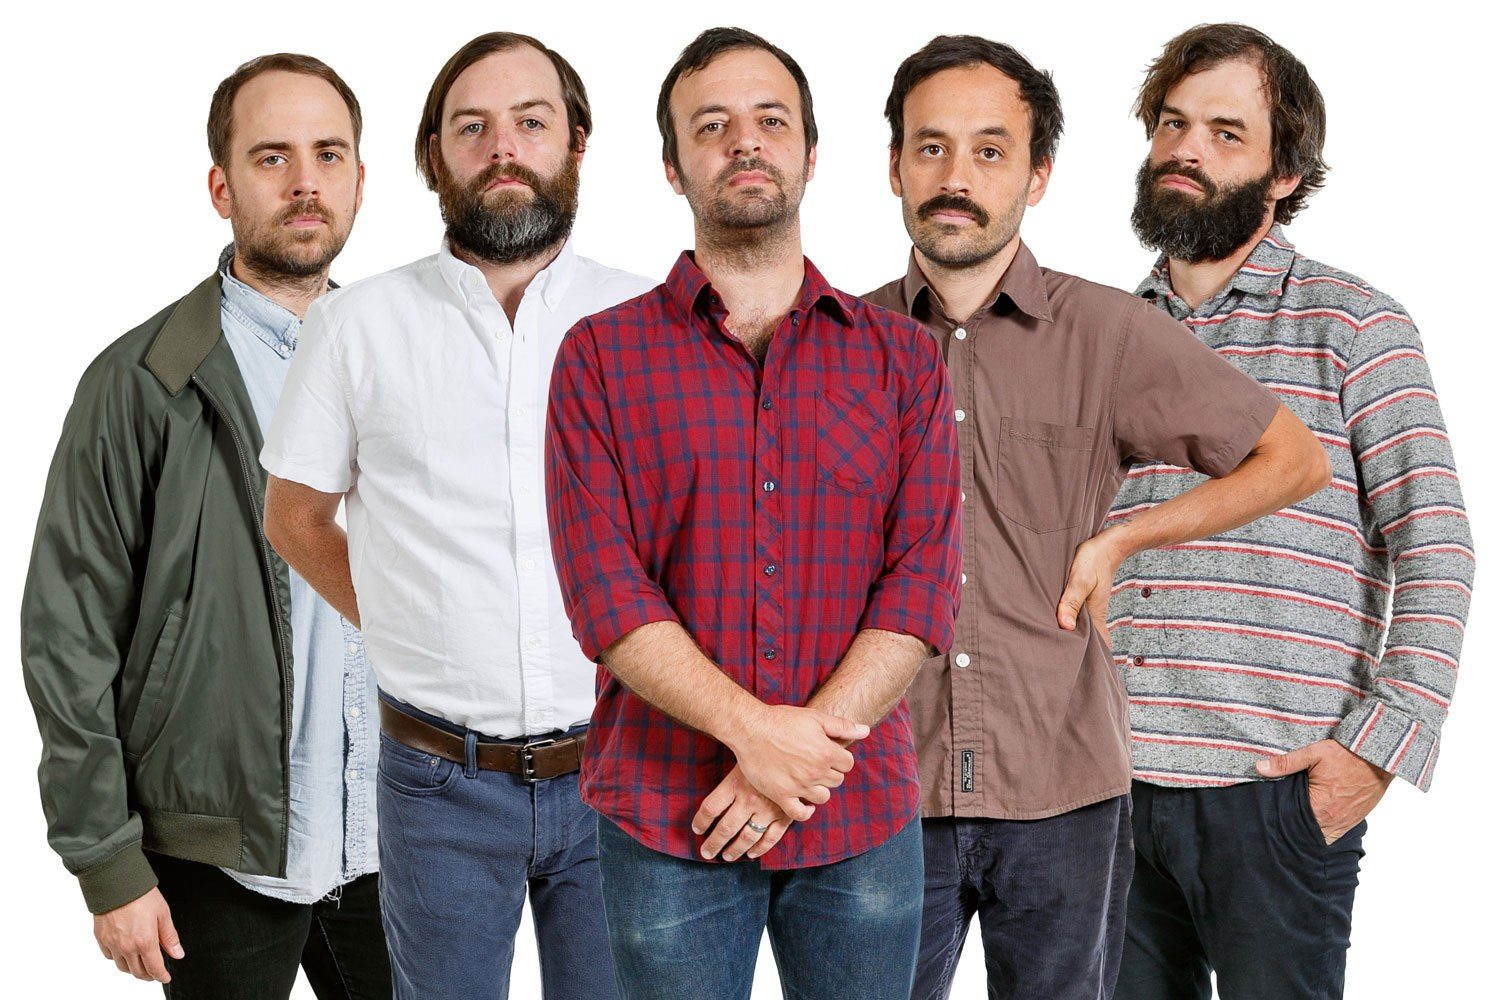 mewithoutYou have announced a new album and dropped a new EP